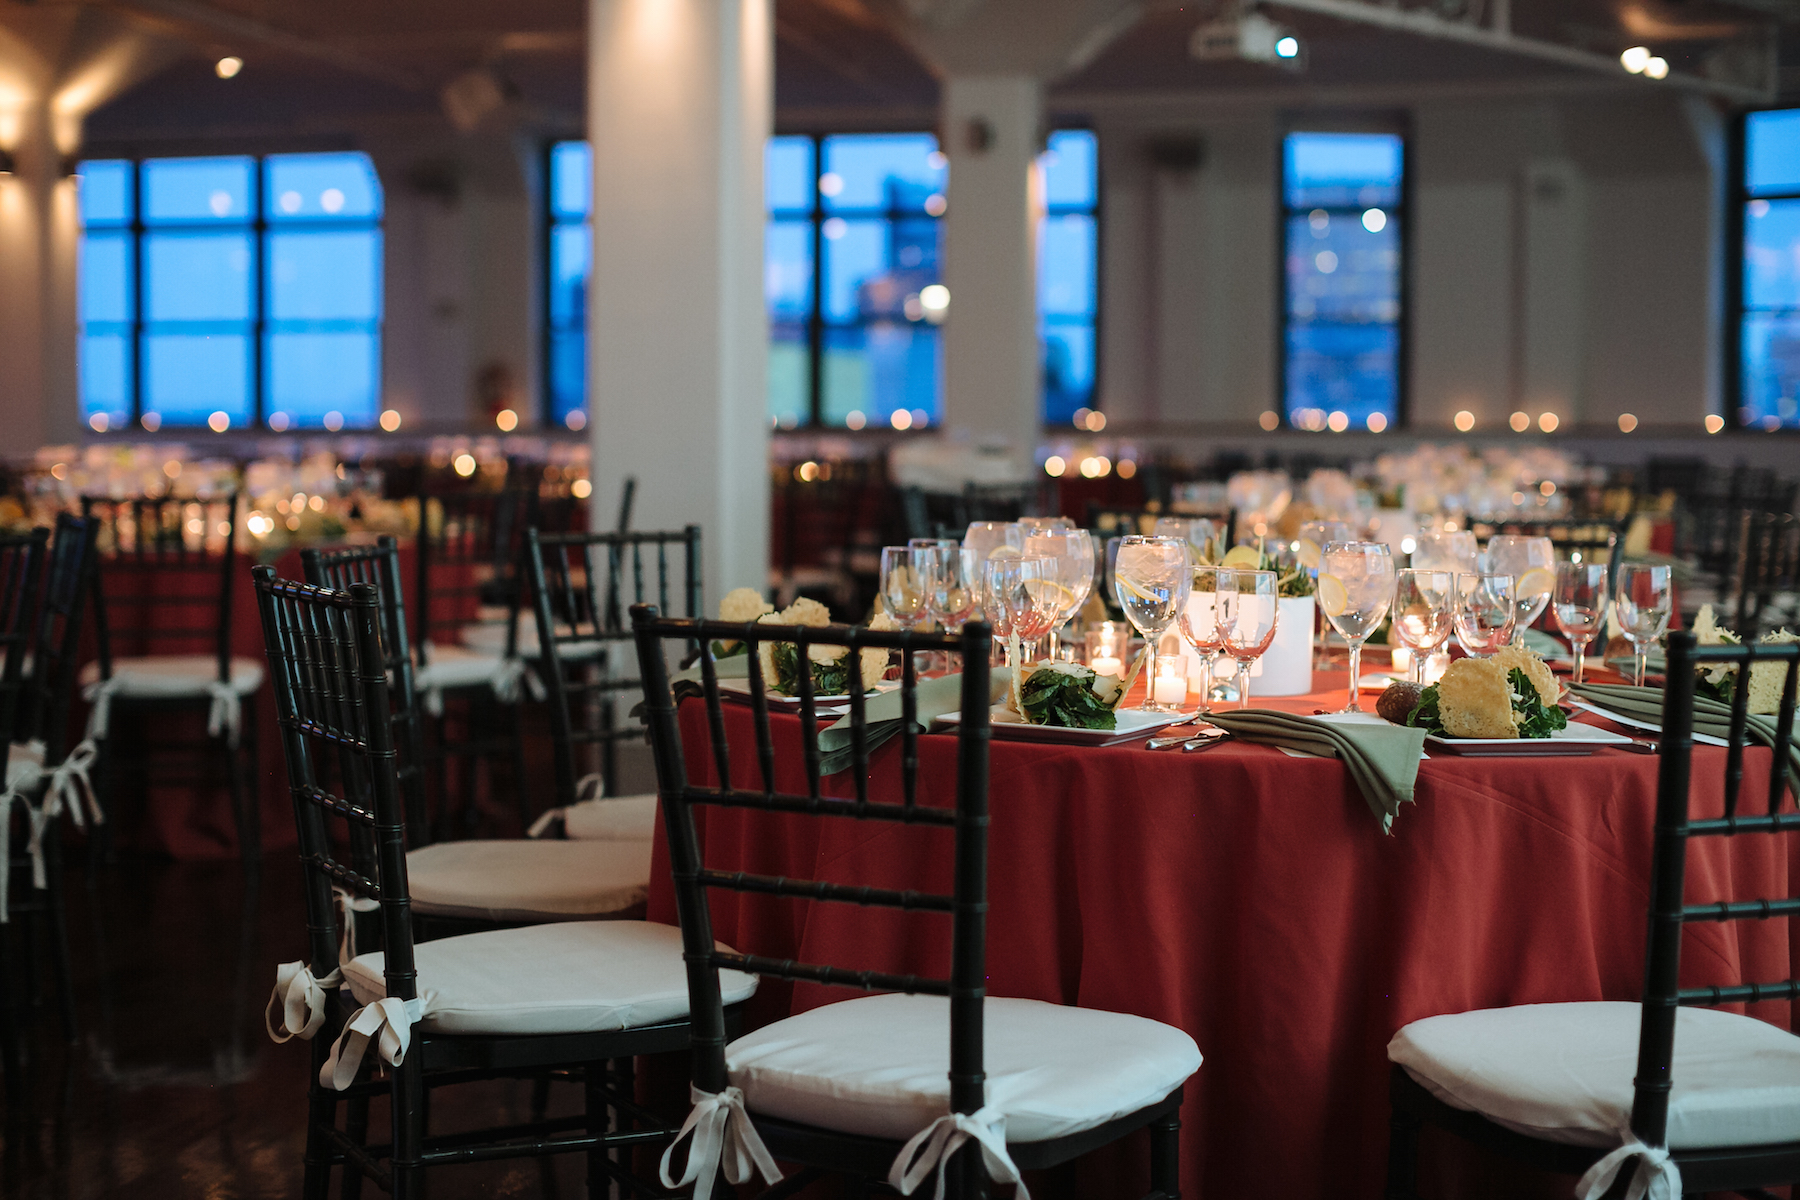 Lynn mccary events for 1440 broadway 19th floor new york ny 10018